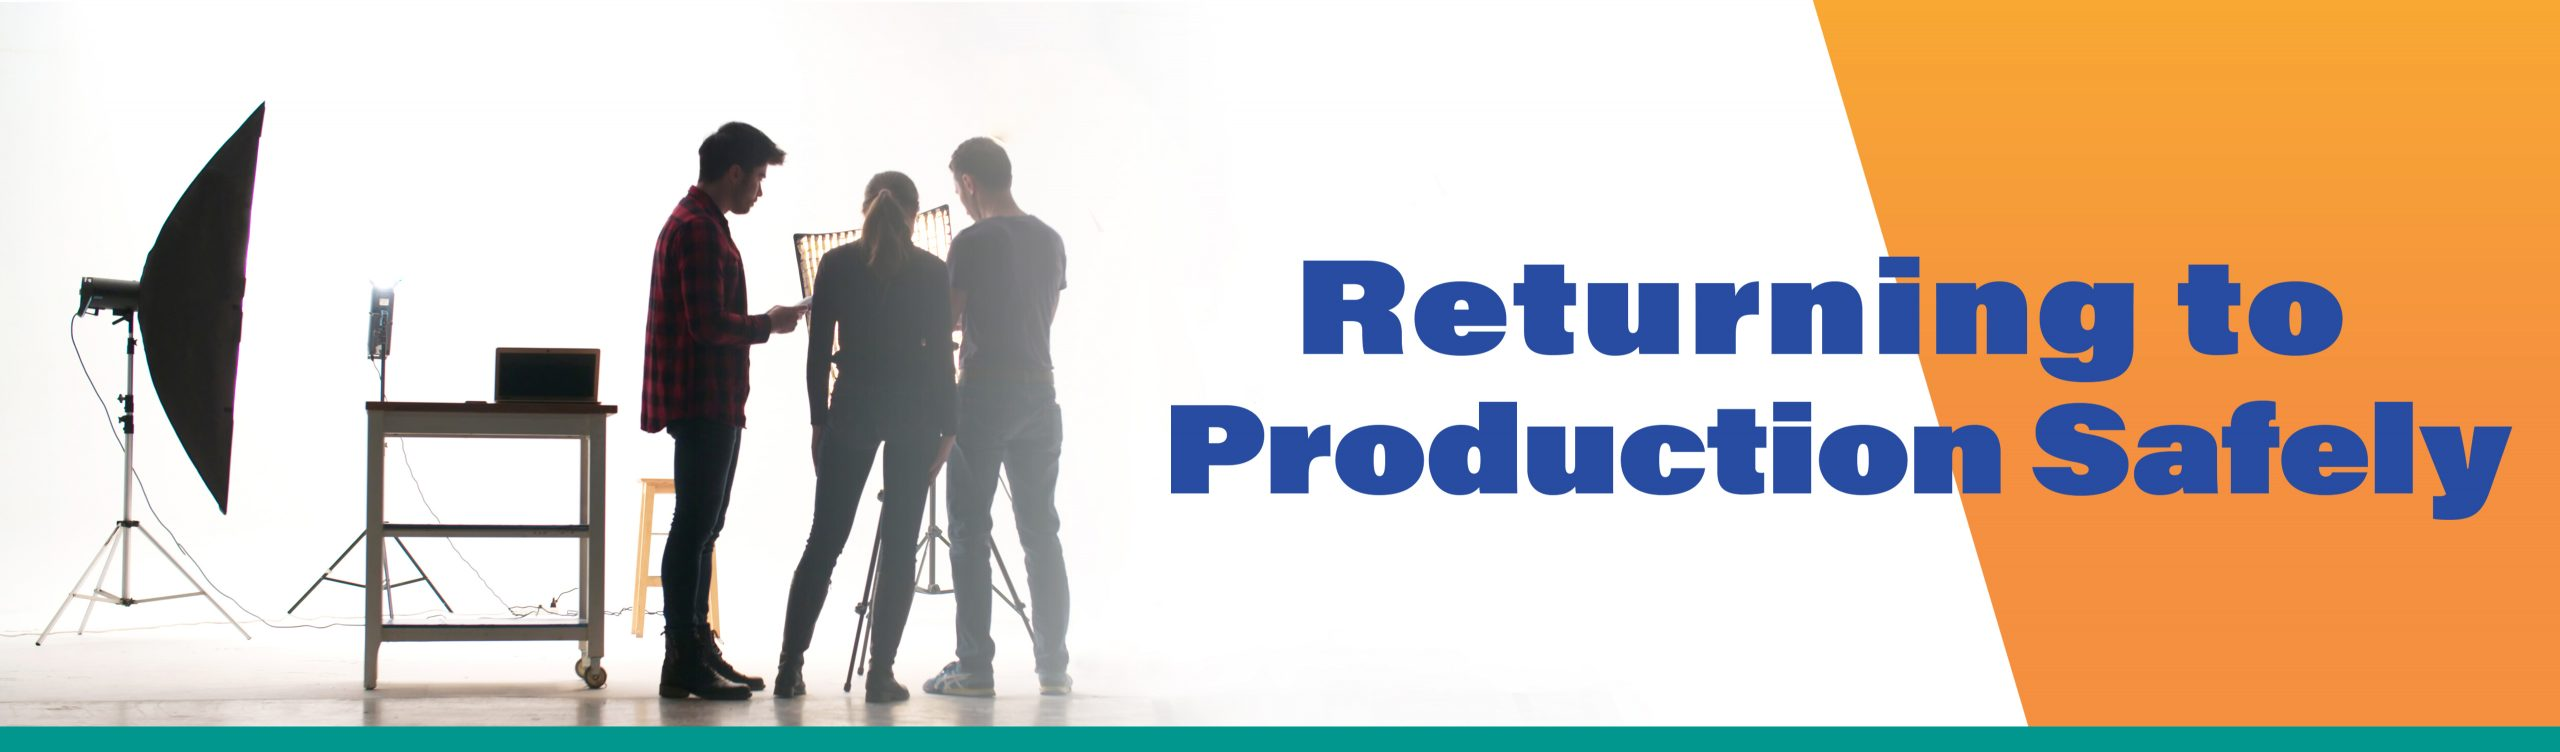 Returning to Production Safely Decorative Banner Image